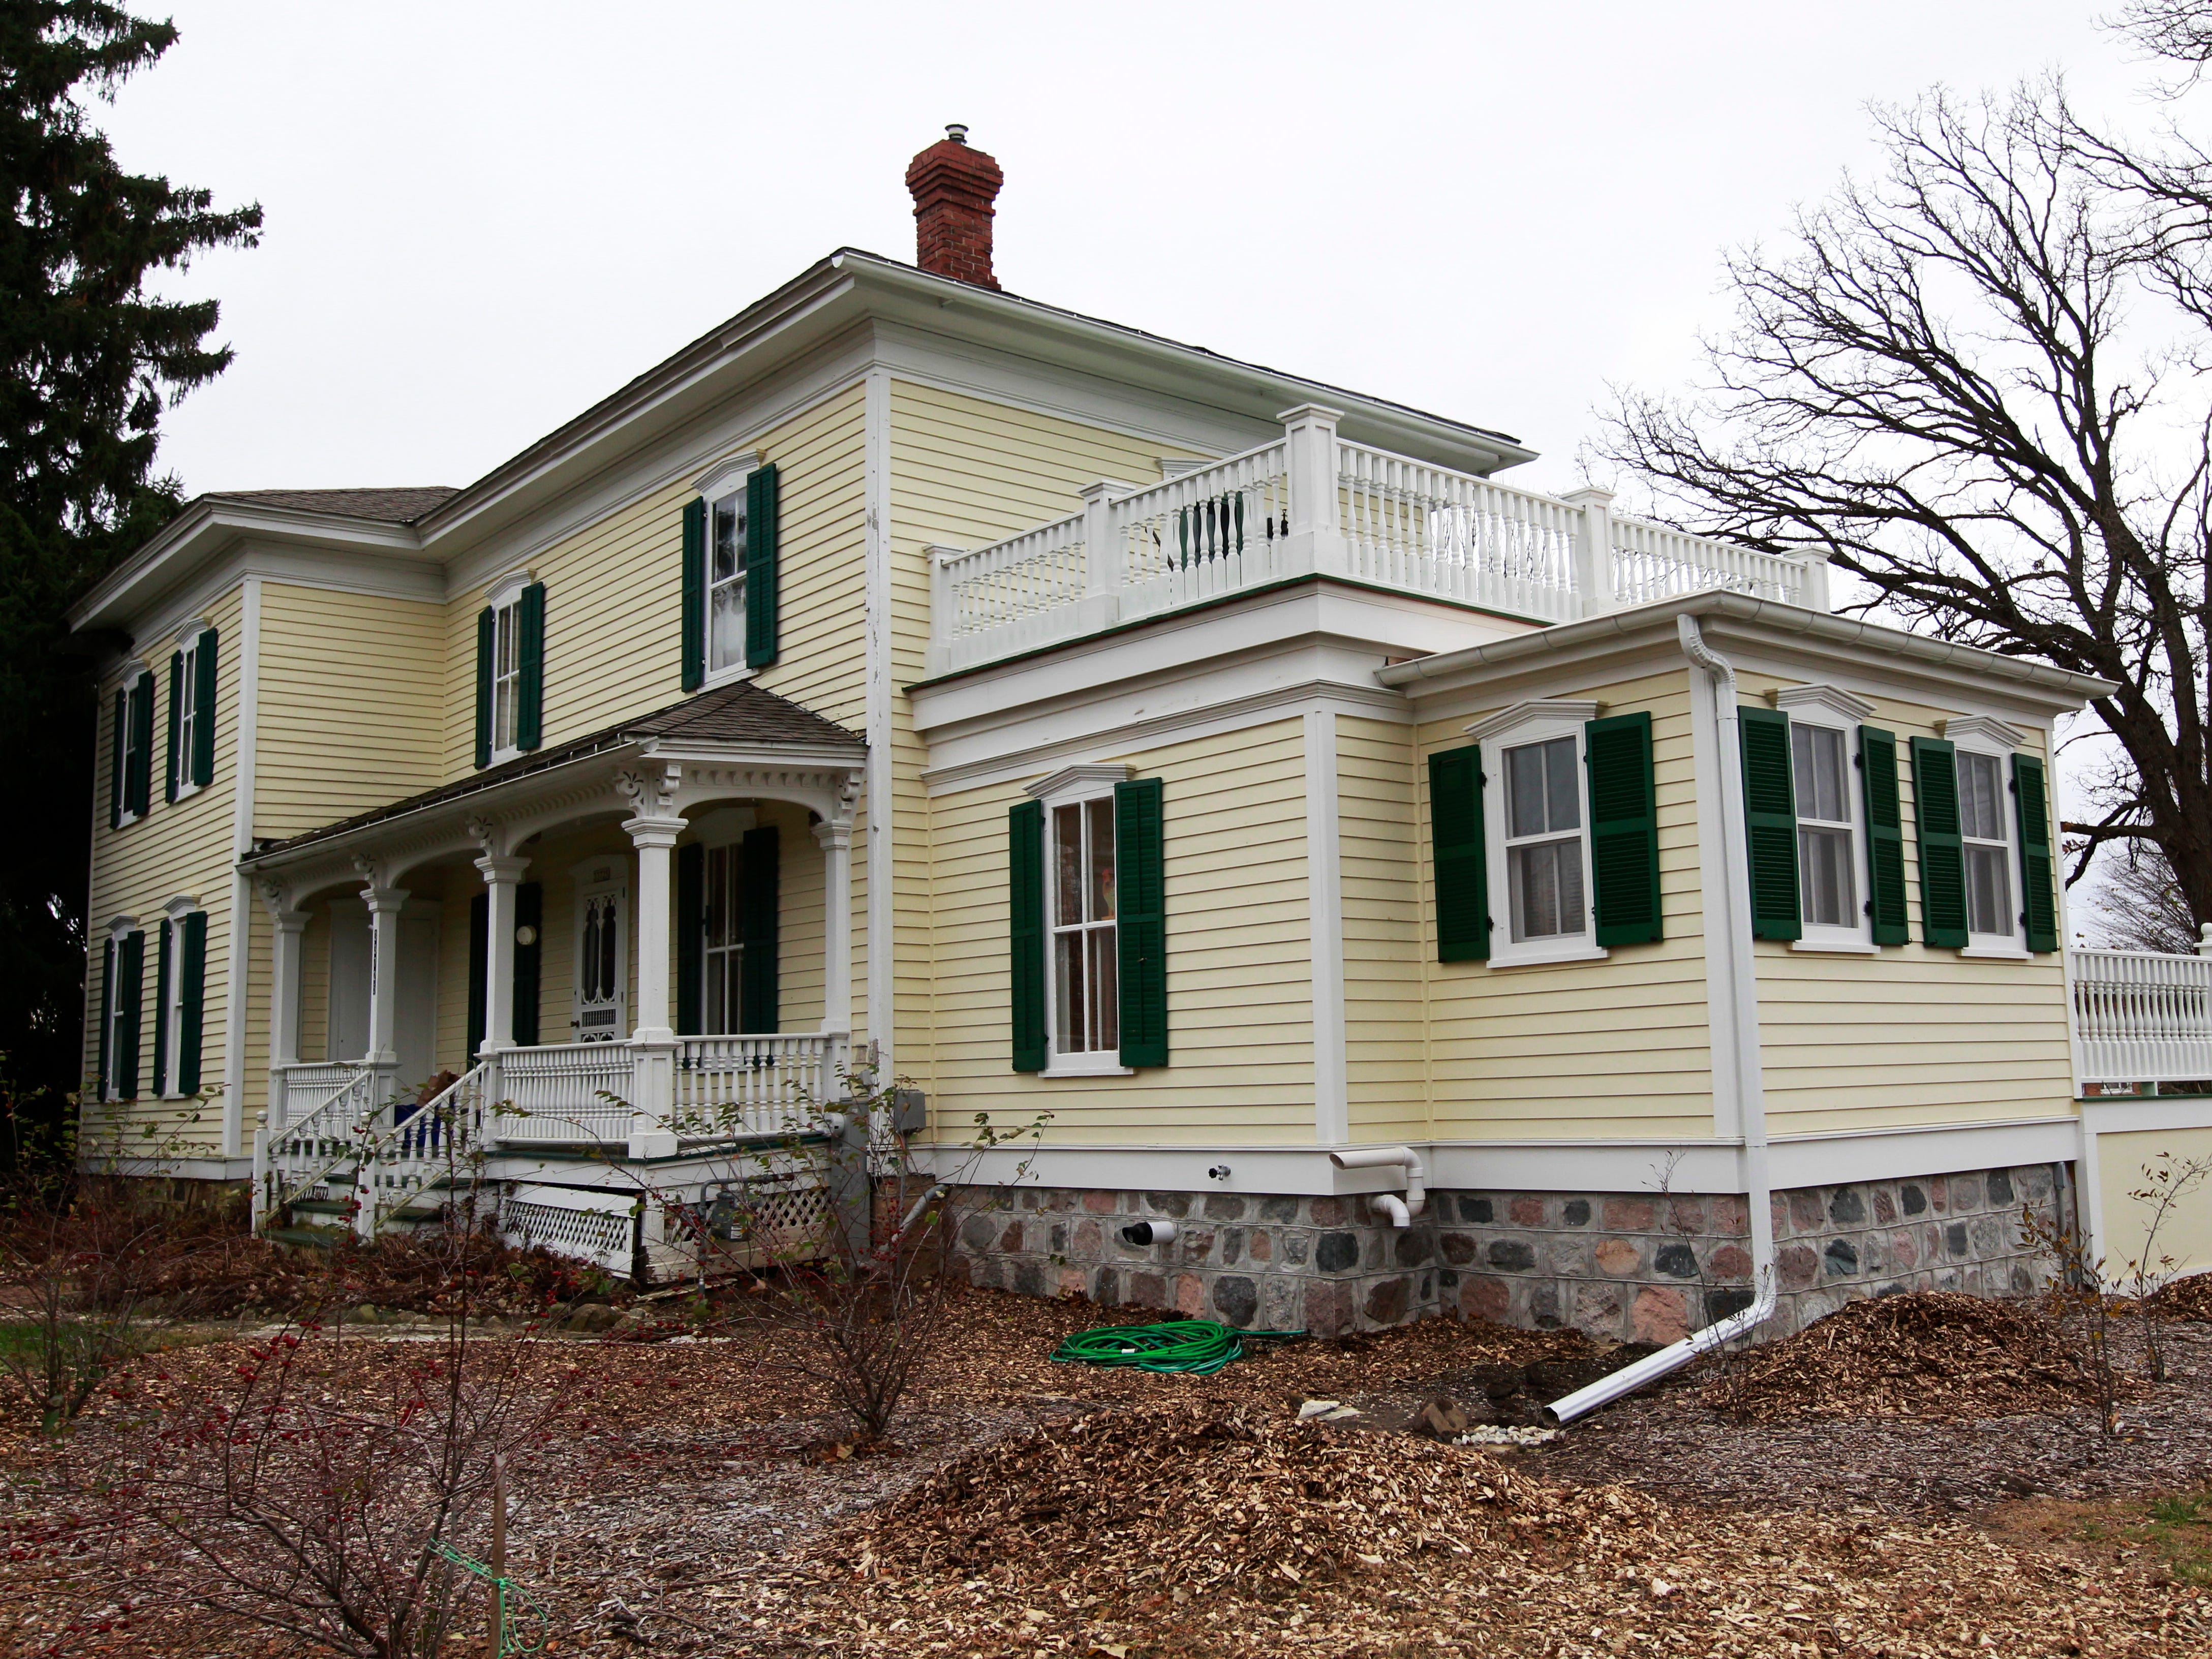 One of two additions to the Italianate farmhouse is to the right of the front porch.